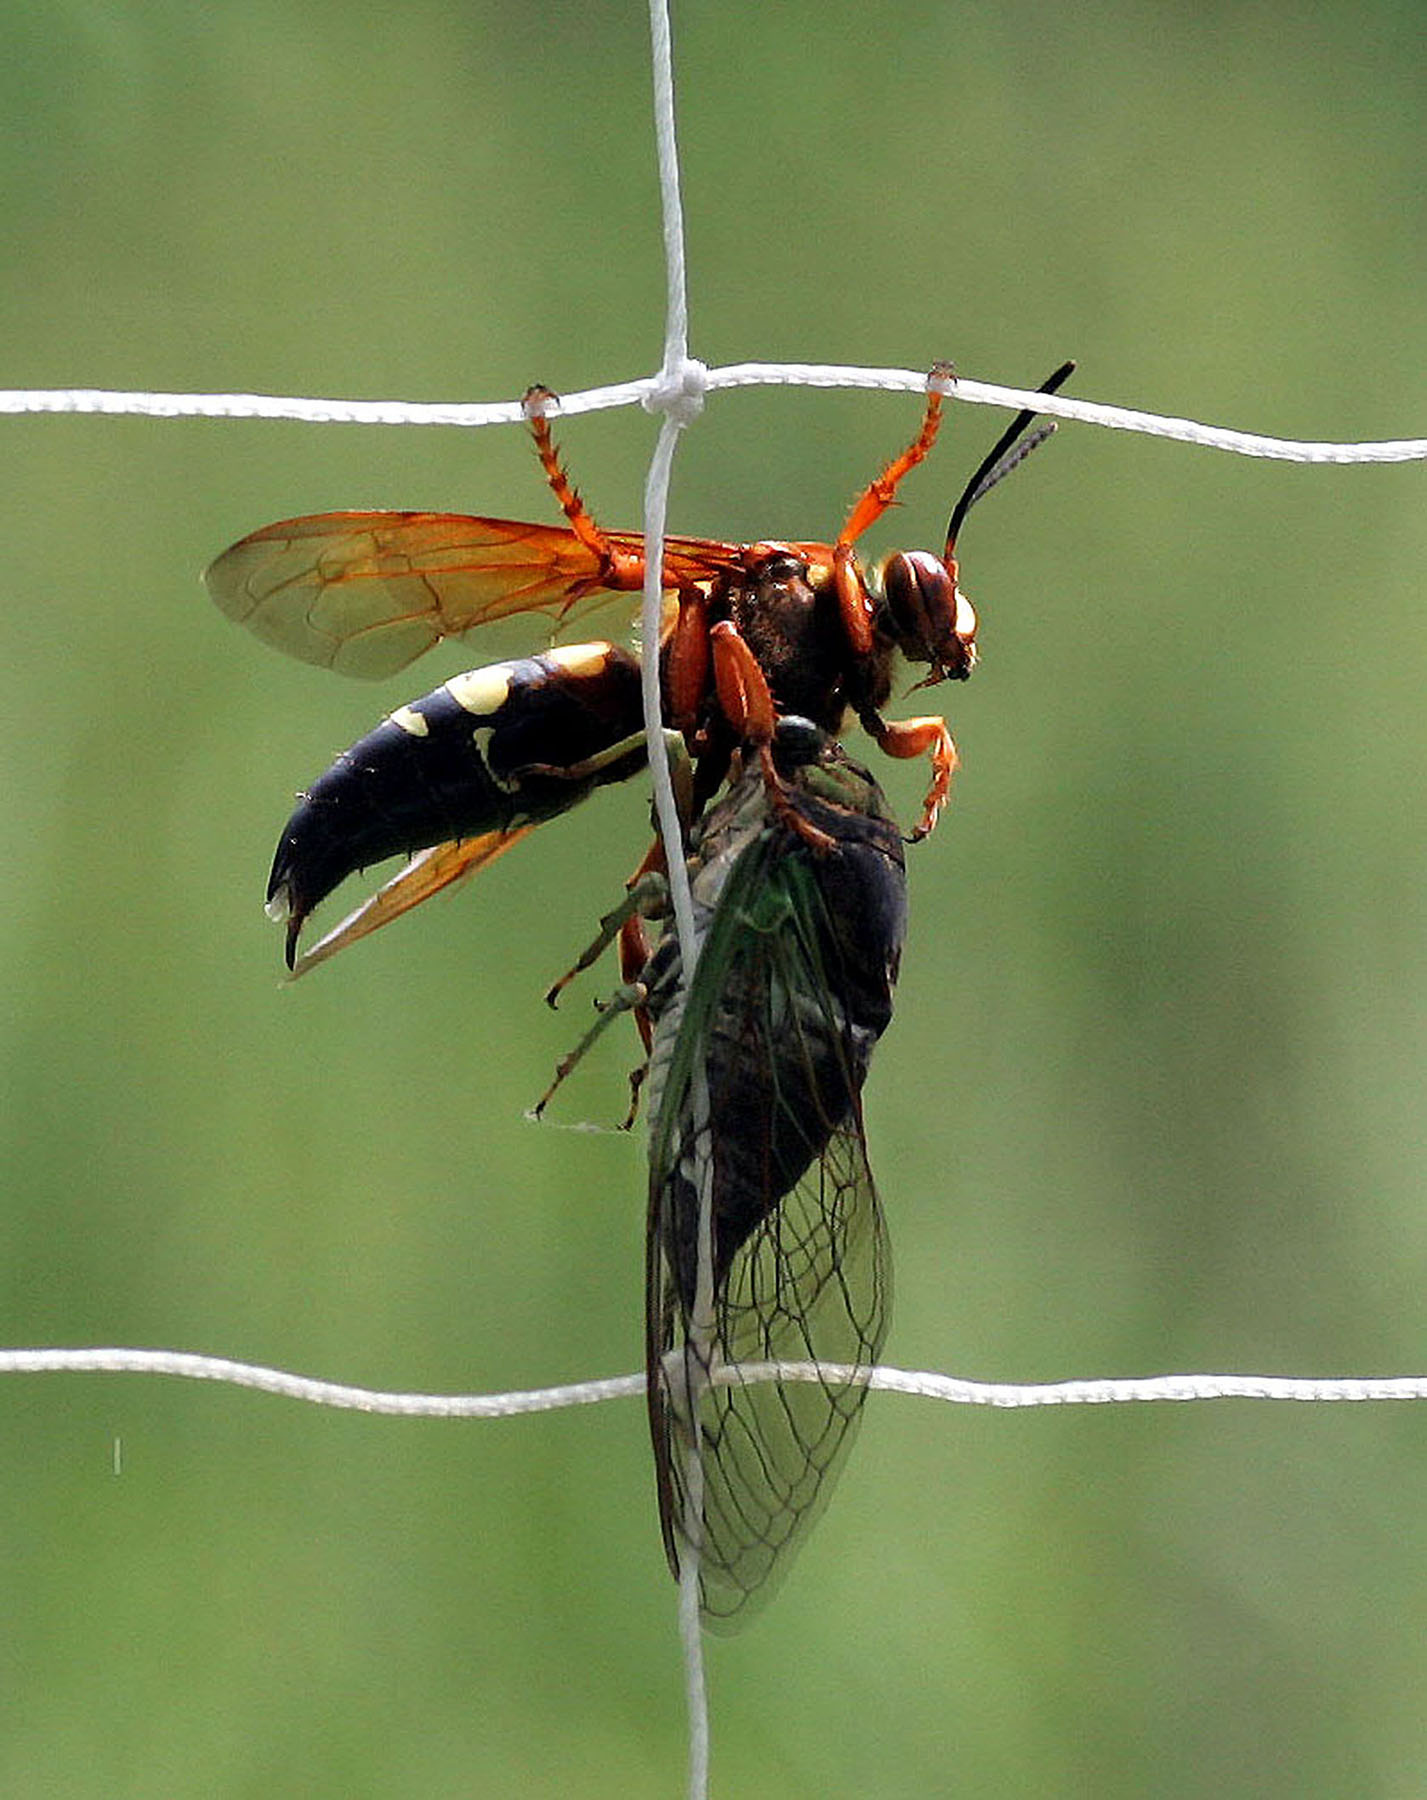 Why are cicadas showing up dead on my porch? | Ask an Entomologist